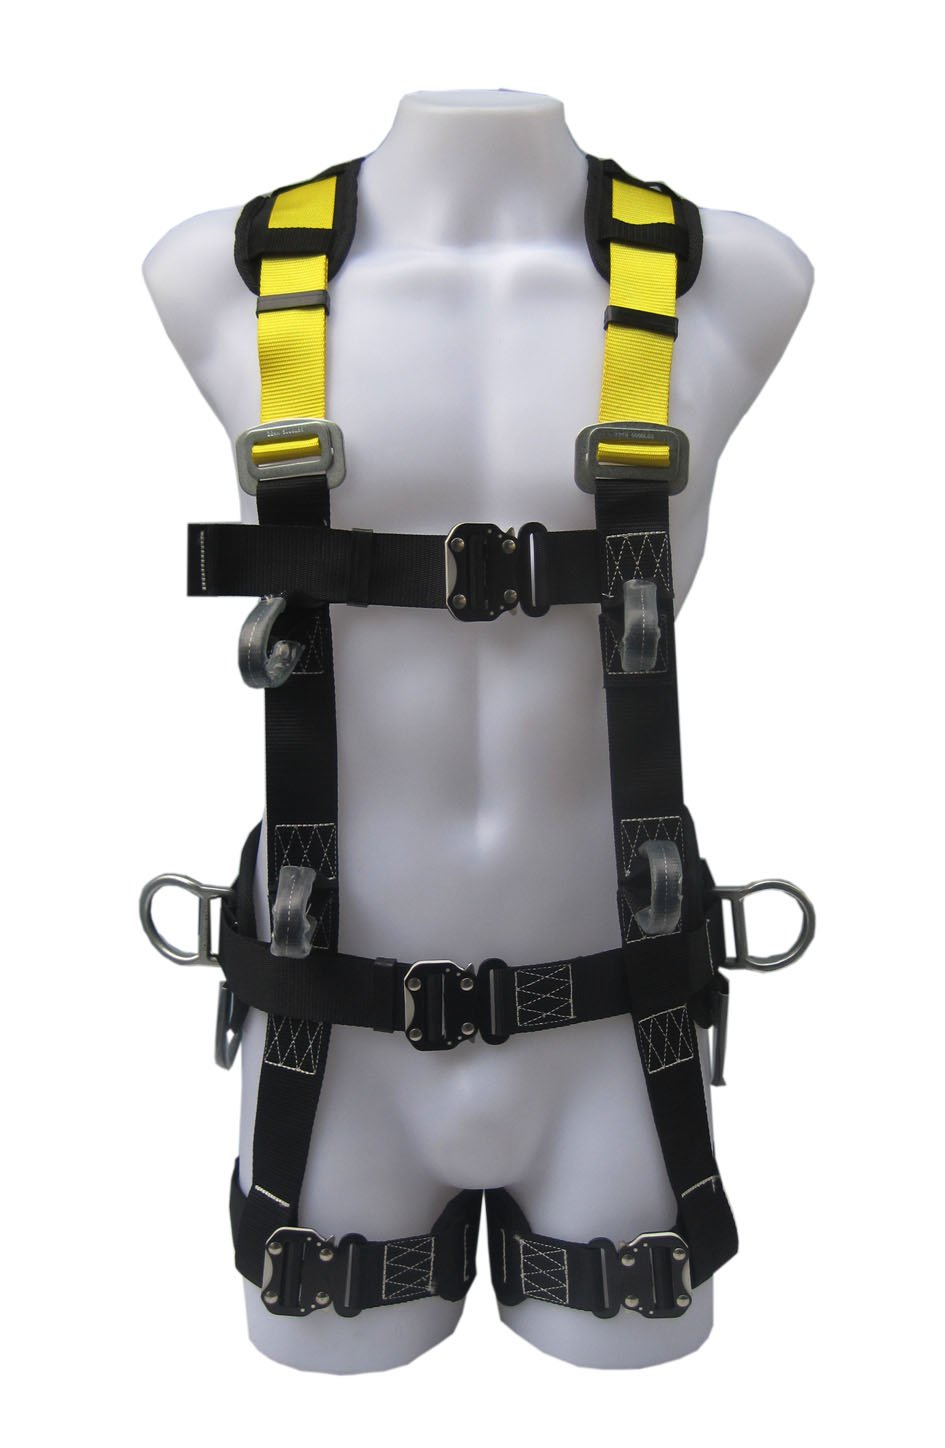 Commando Fall Protect Full-Body Safety Harness with Lanyard